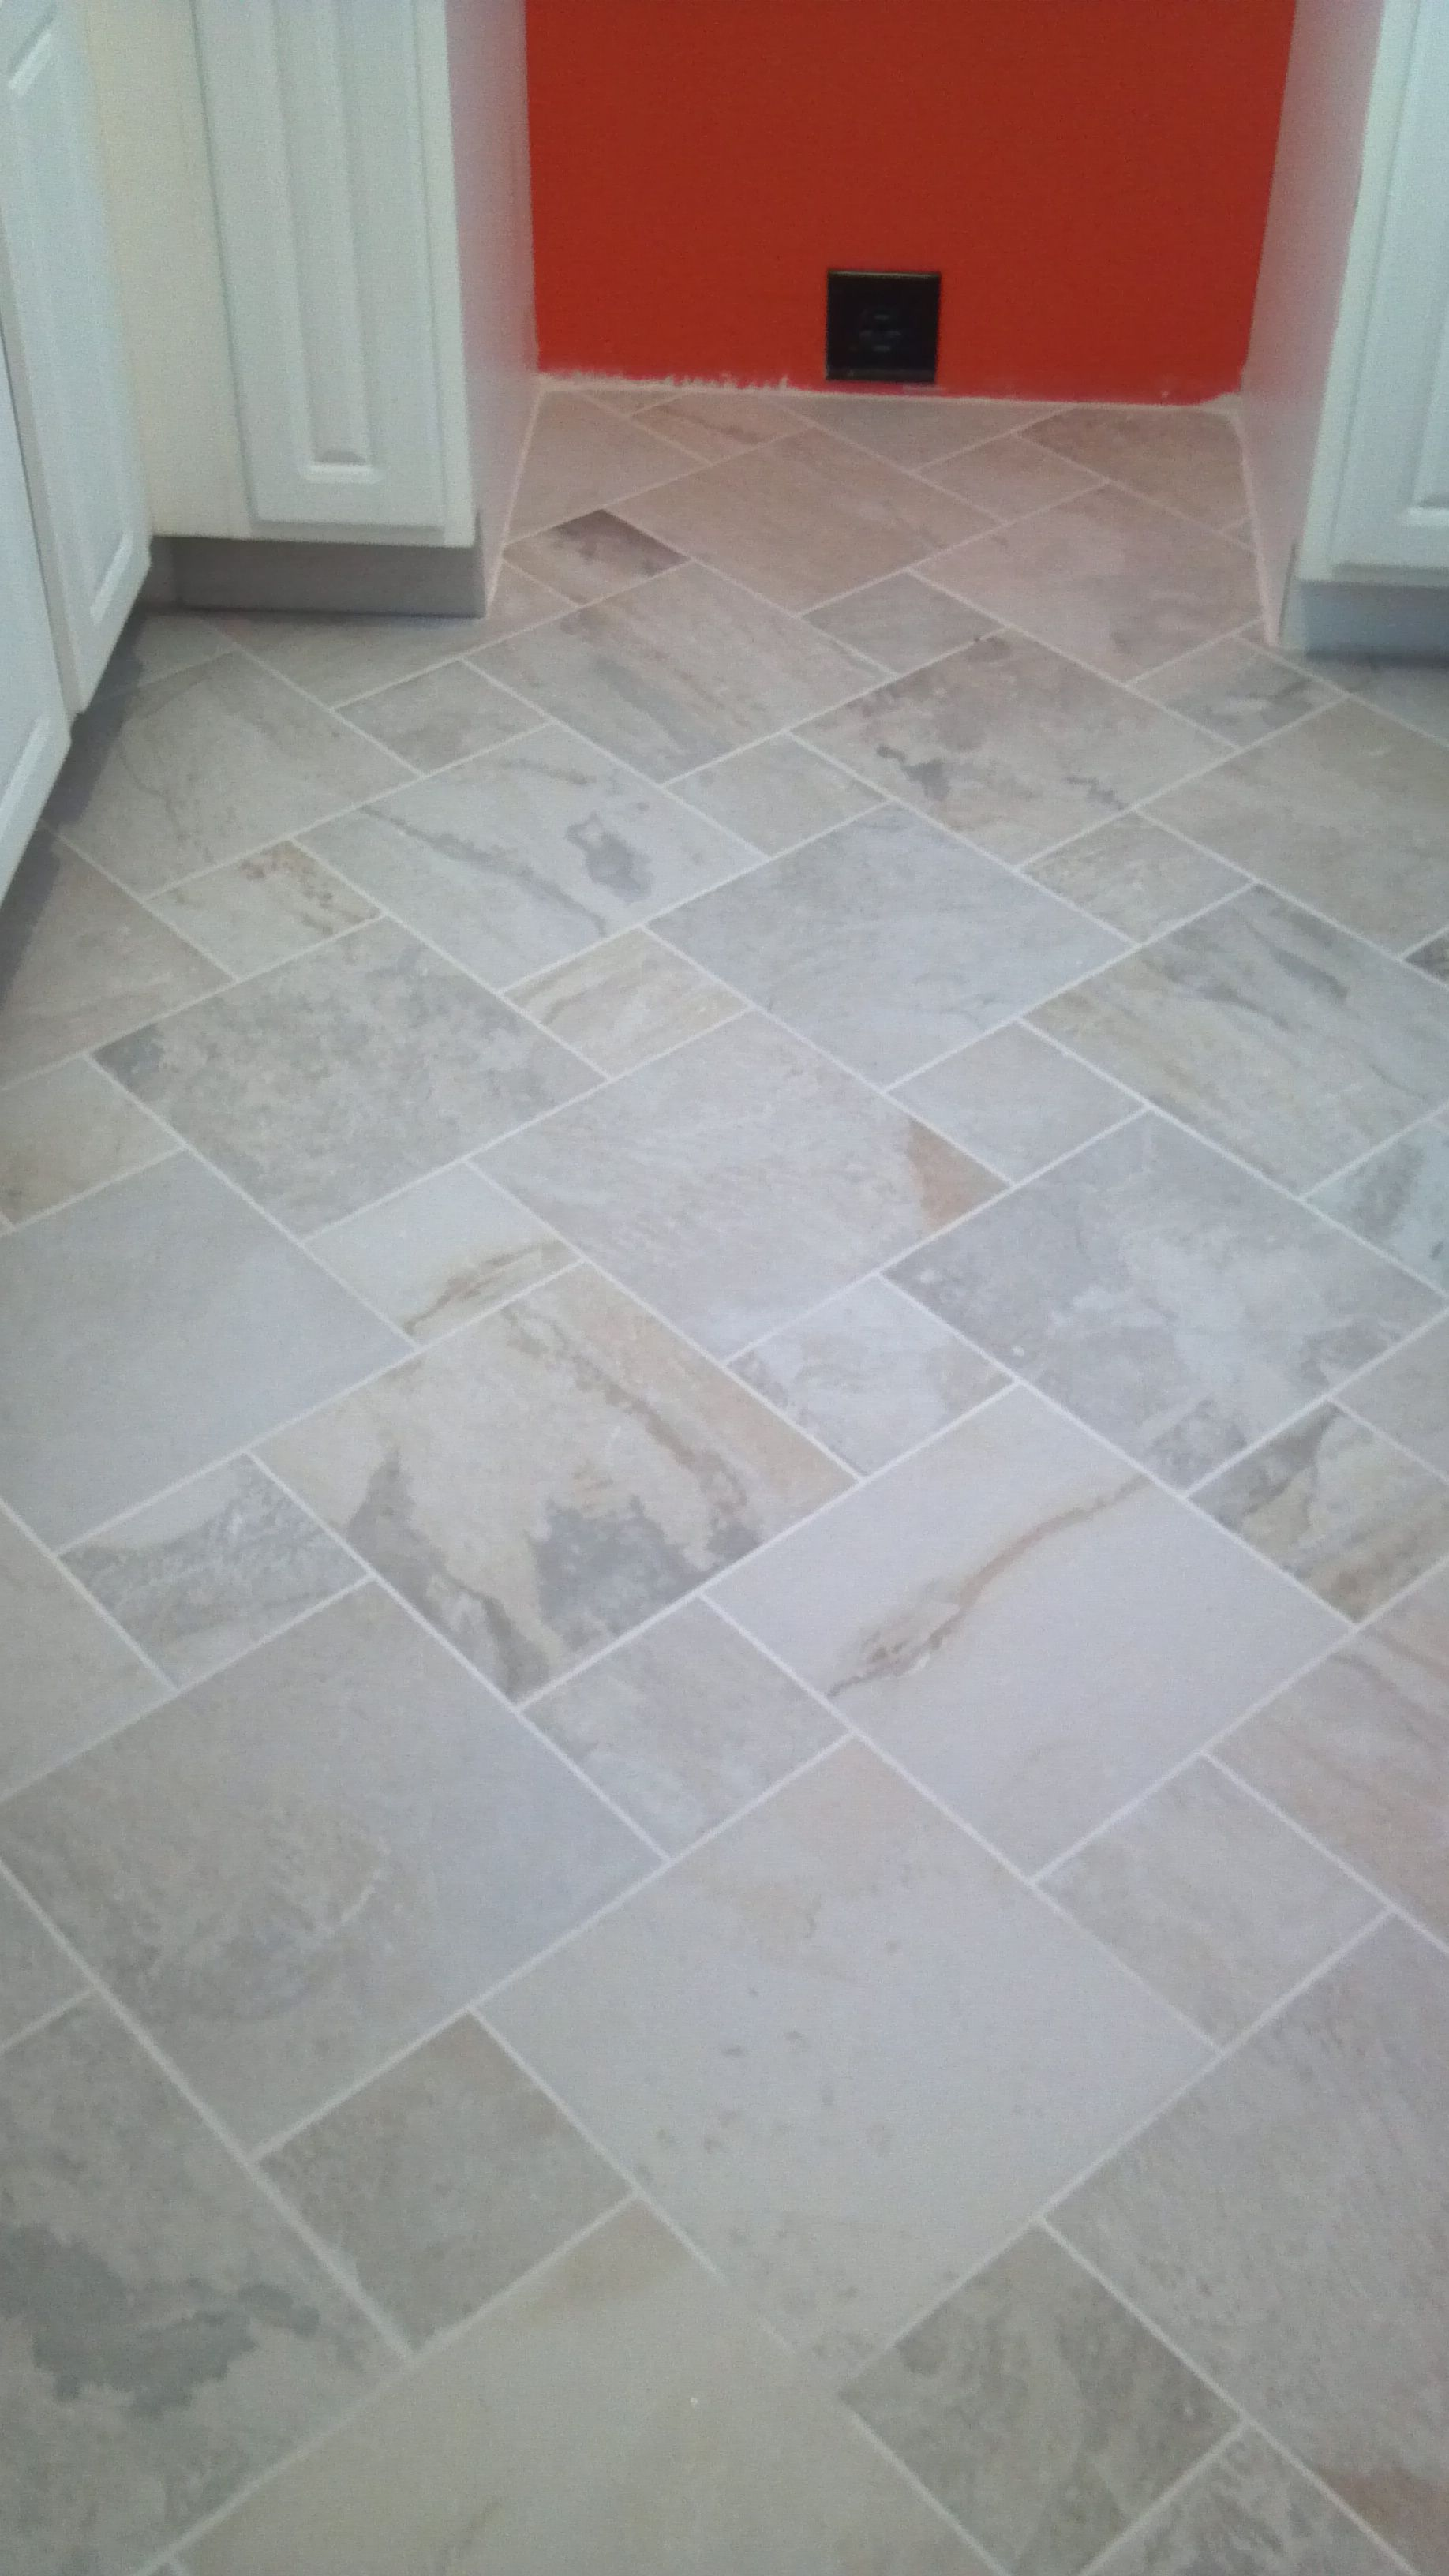 Ivetta White porcelain tile - Lowes | Tile | Pinterest | Porcelain ...